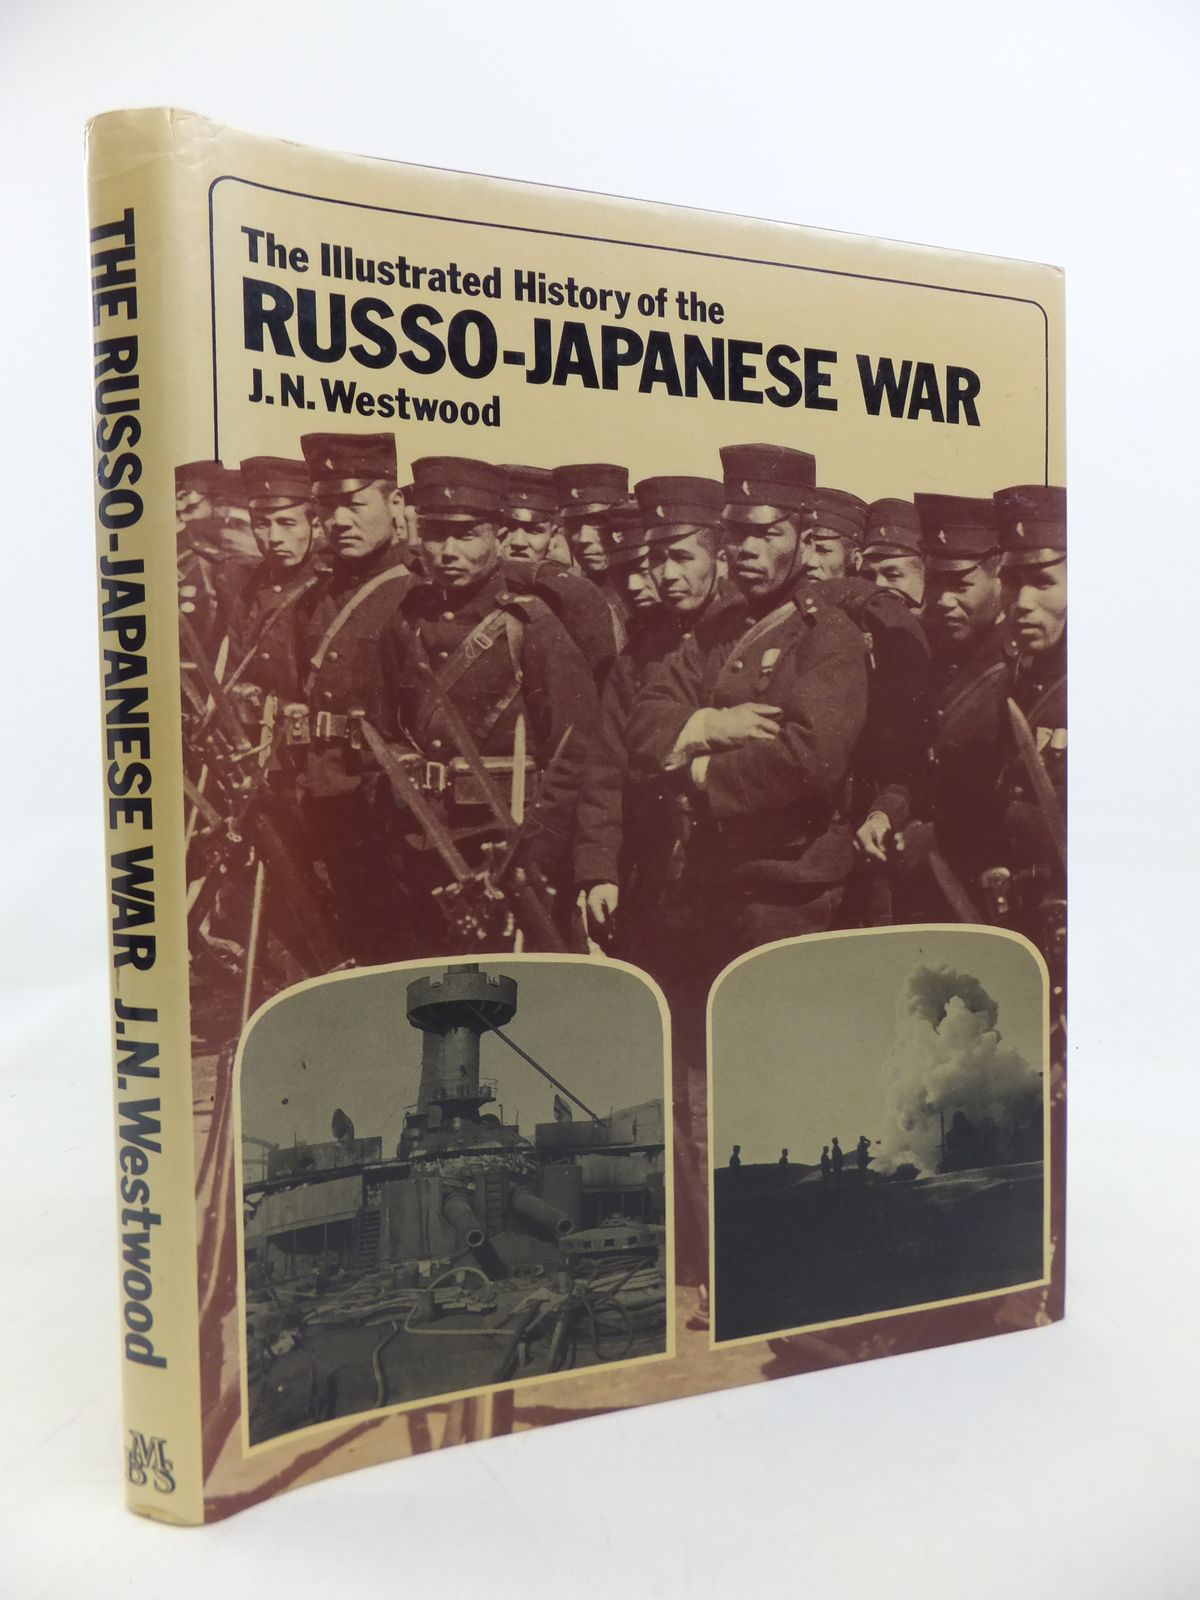 By August the Japanese had